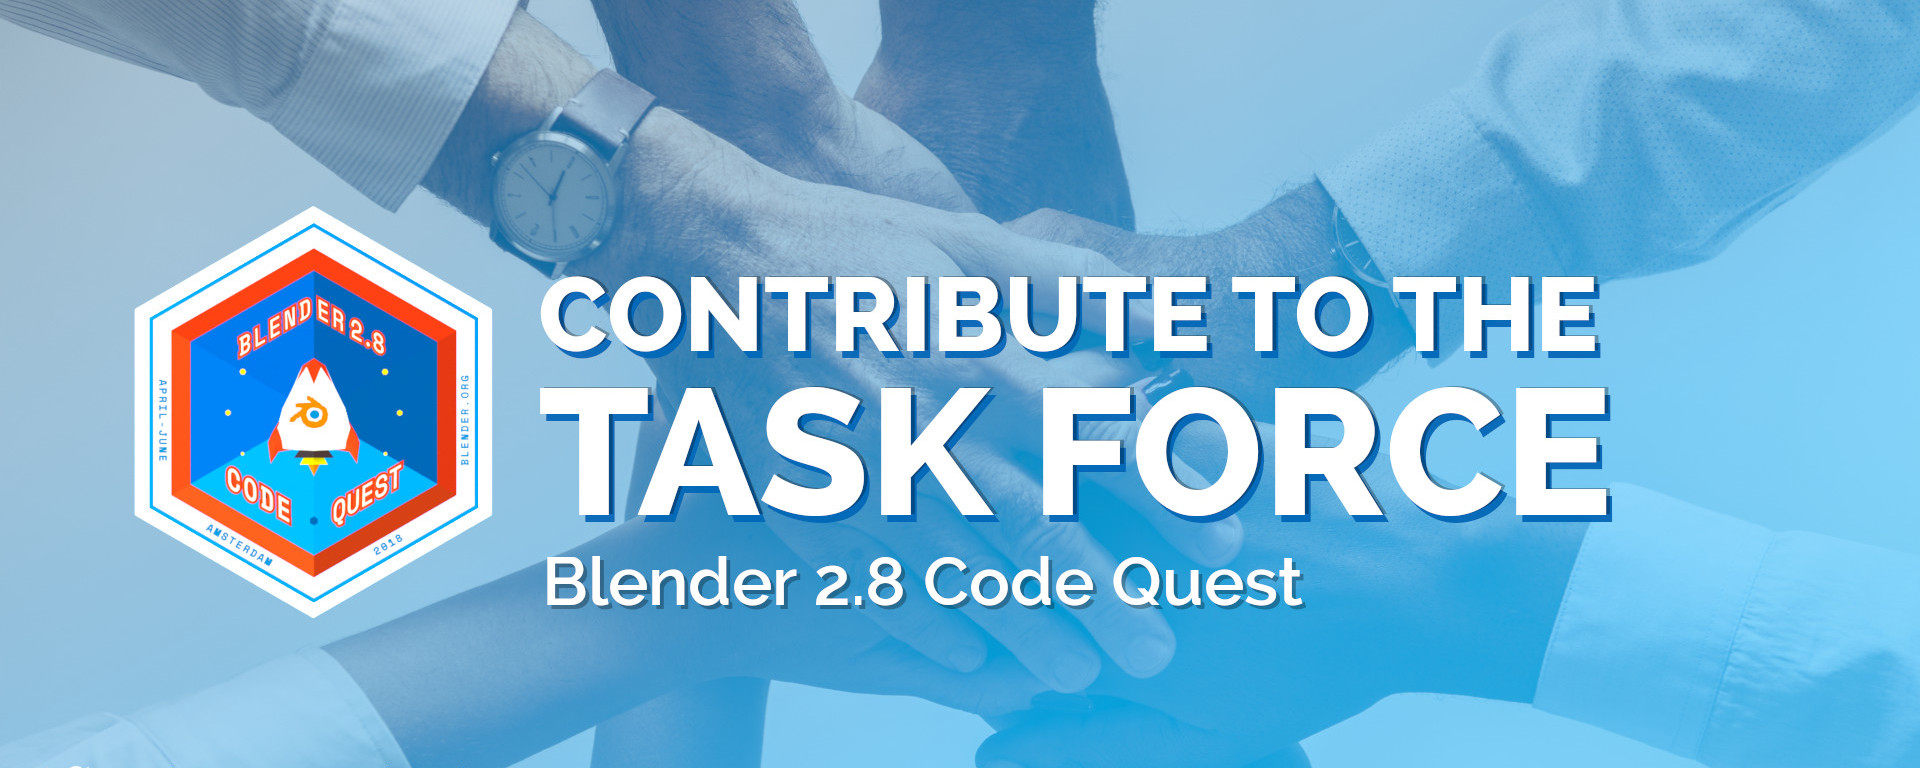 Blender 2.8 Task Force